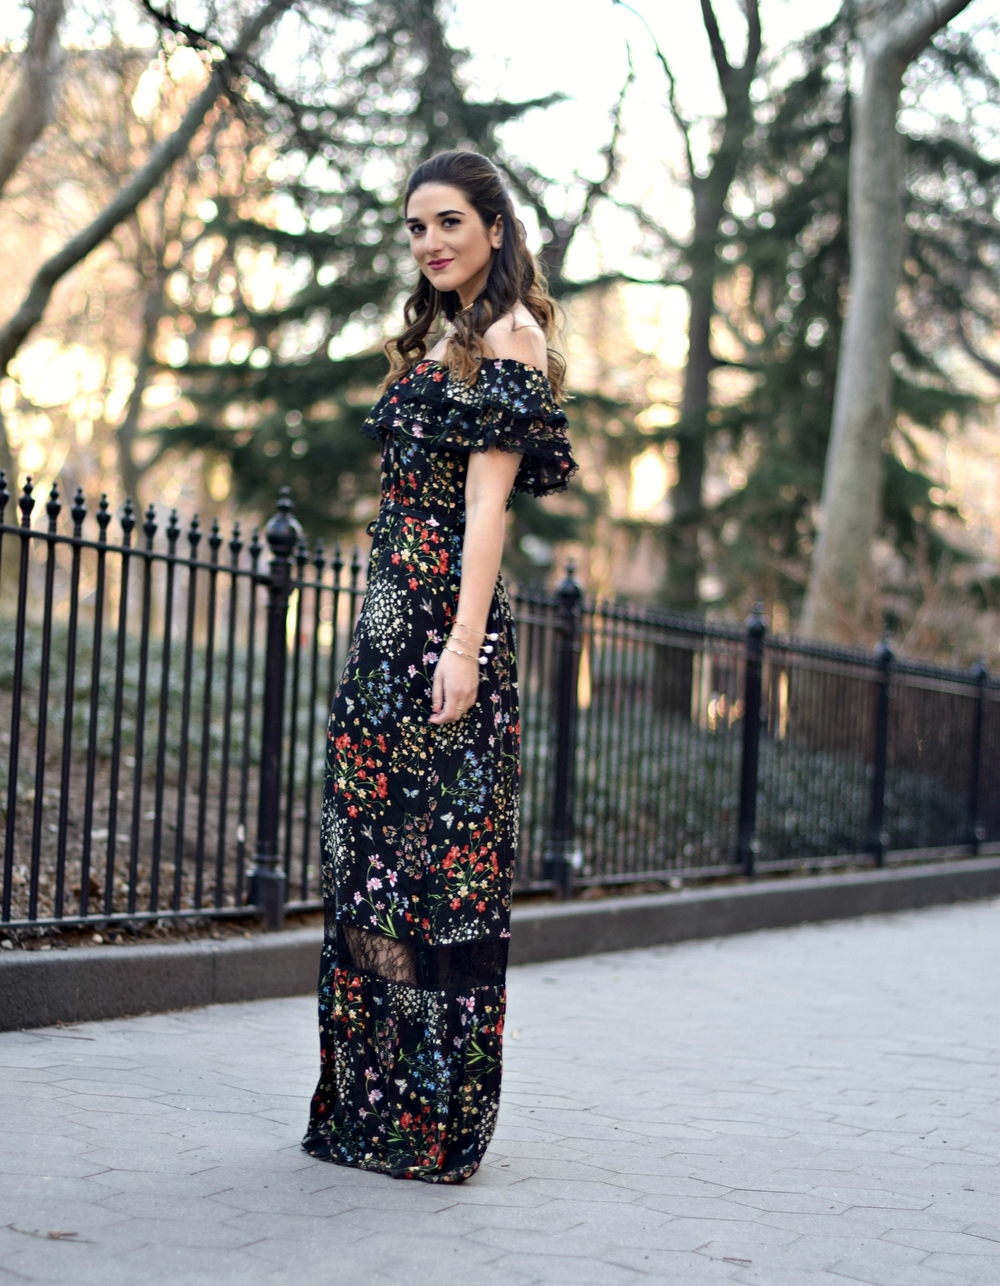 Alice Olivia Floral Dress Louboutins & Love Fashion Blog Esther Santer NYC Street Style Blogger Outfit OOTD Trunk Club Lydell Hair Brunette Model New York City Photoshoot Spring Summer Bracelet Gold Choker Jewelry Pretty Beautiful Shoulder Shoes Inspo.jpg